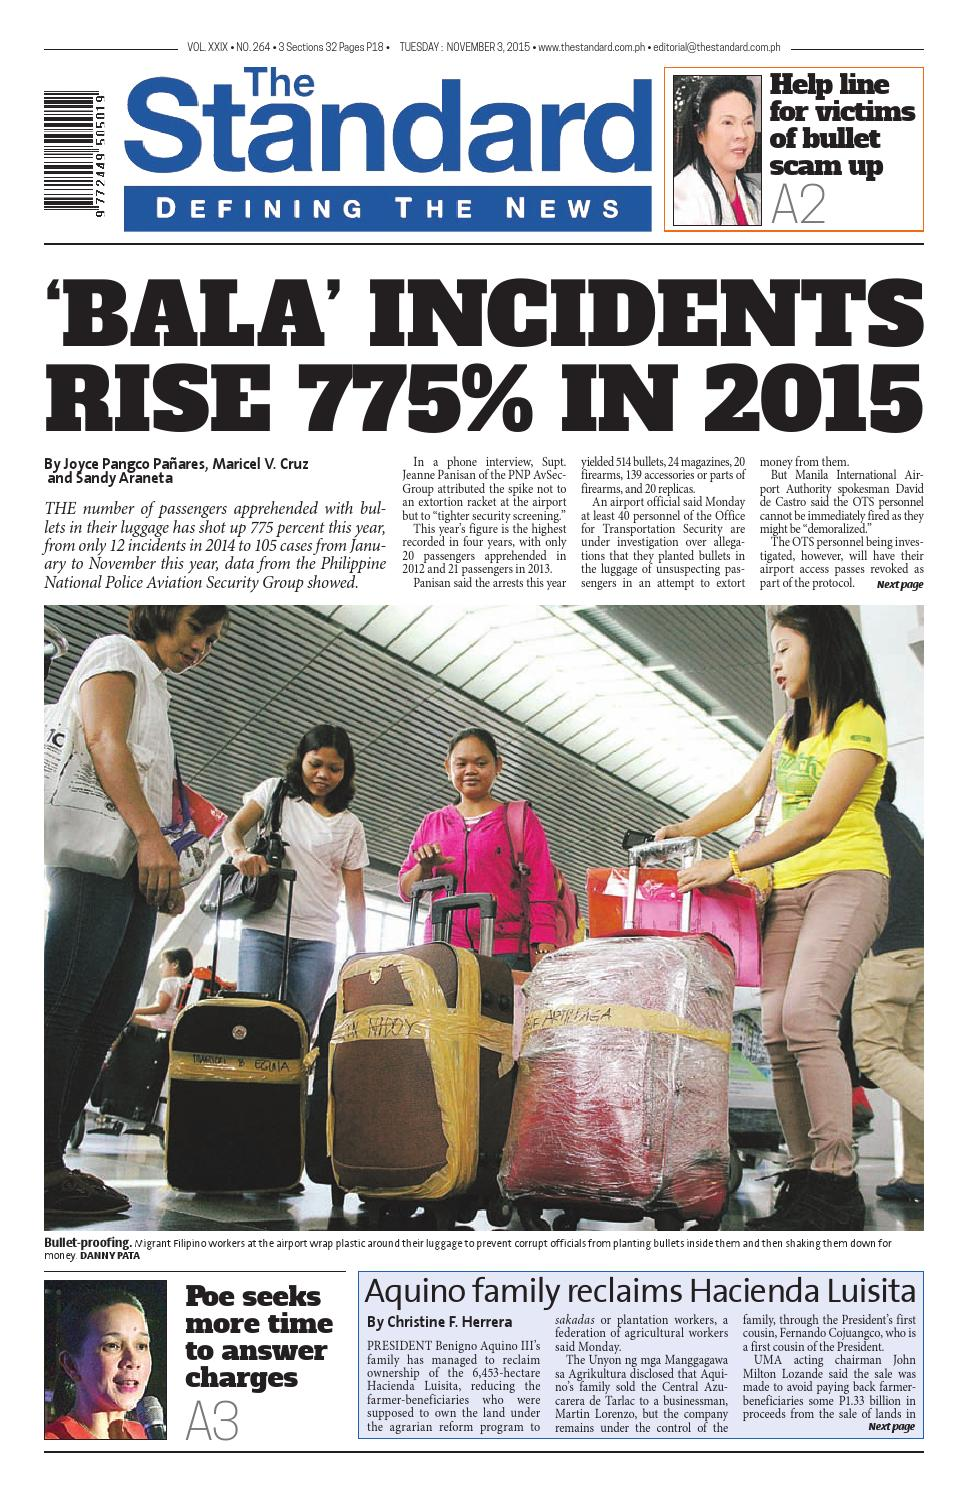 The Standard - 2015 November 03 - Tuesday by Manila Standard